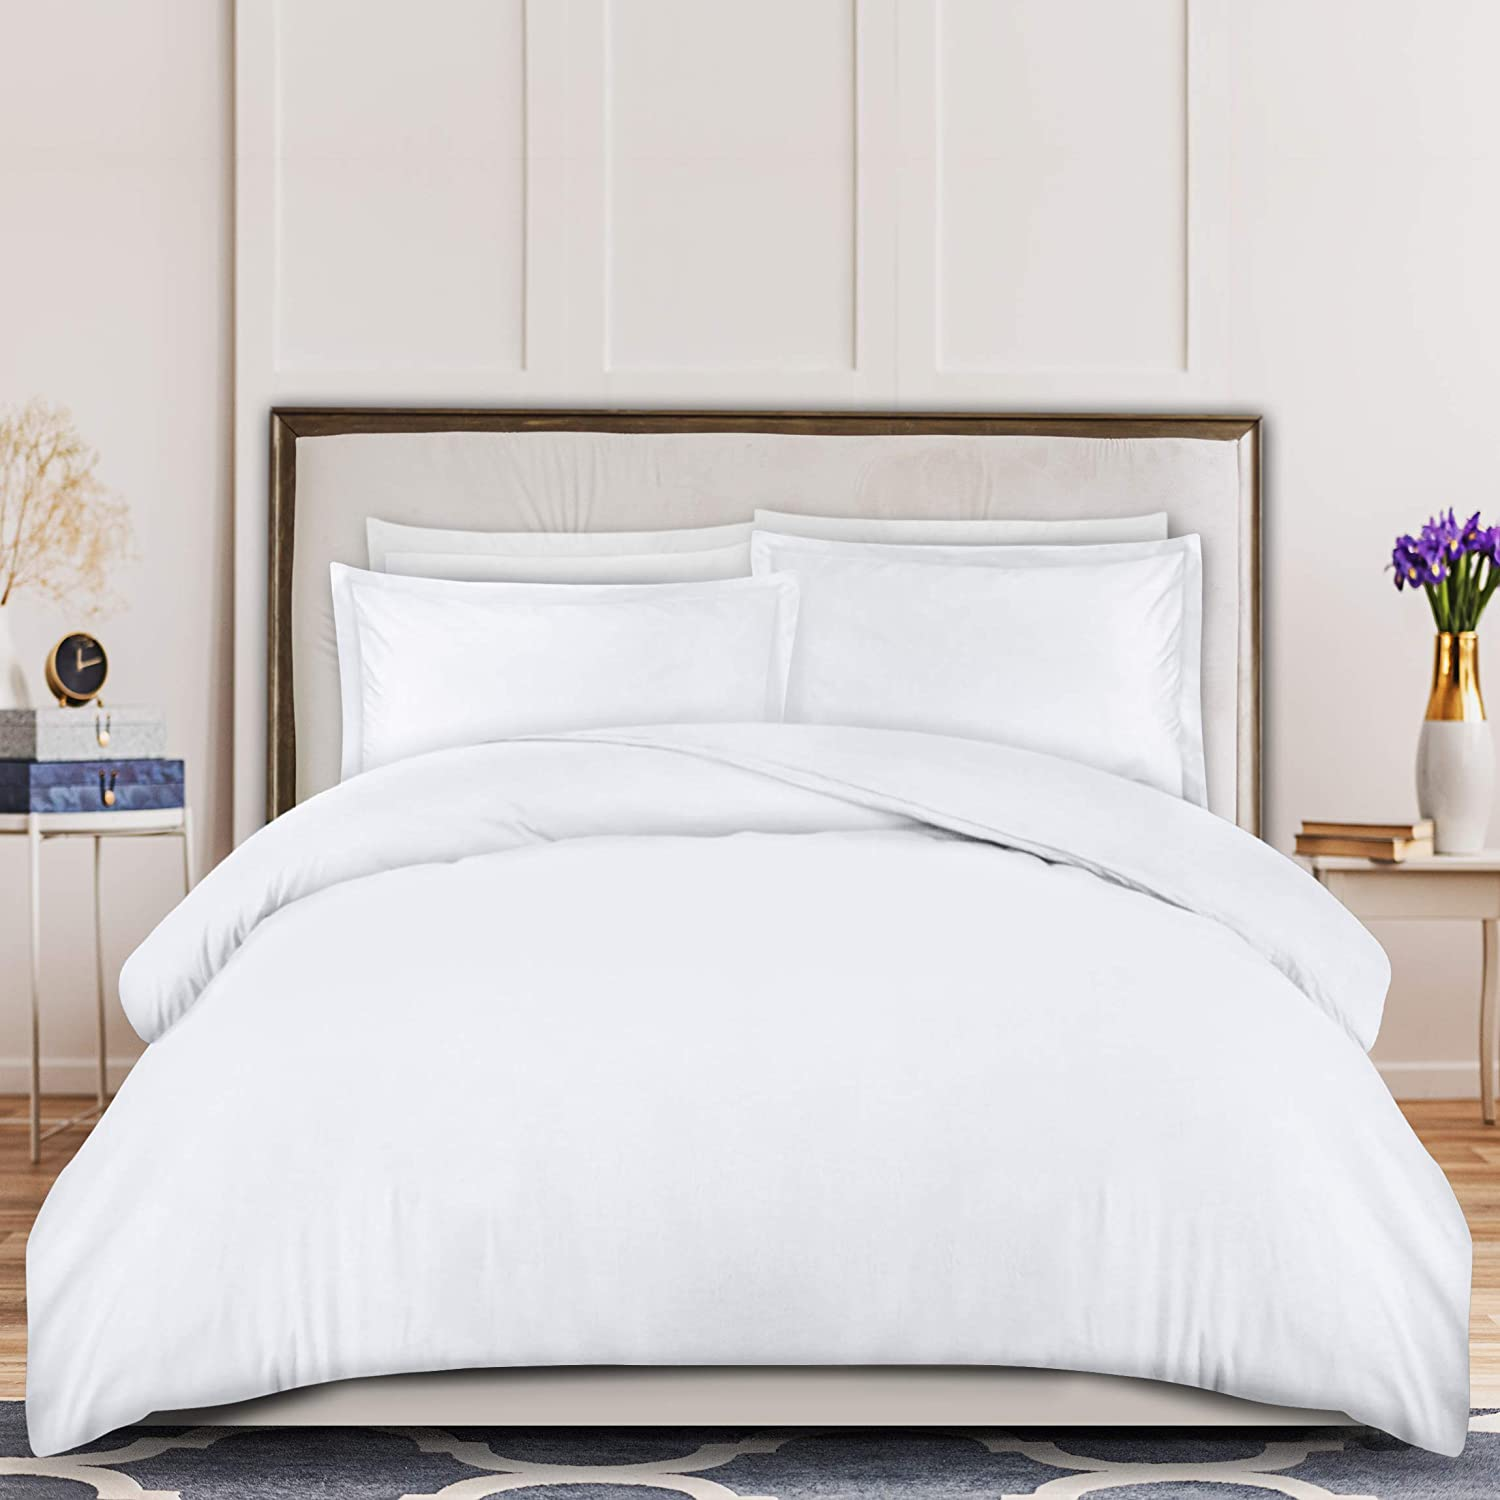 Amazon Com Utopia Bedding 3 Piece Duvet Cover Set 1 Duvet Cover With 2 Pillow Shams Comforter Cover With Zipper Closure Soft Brushed Microfiber Shrinkage Fade Resistant Easy